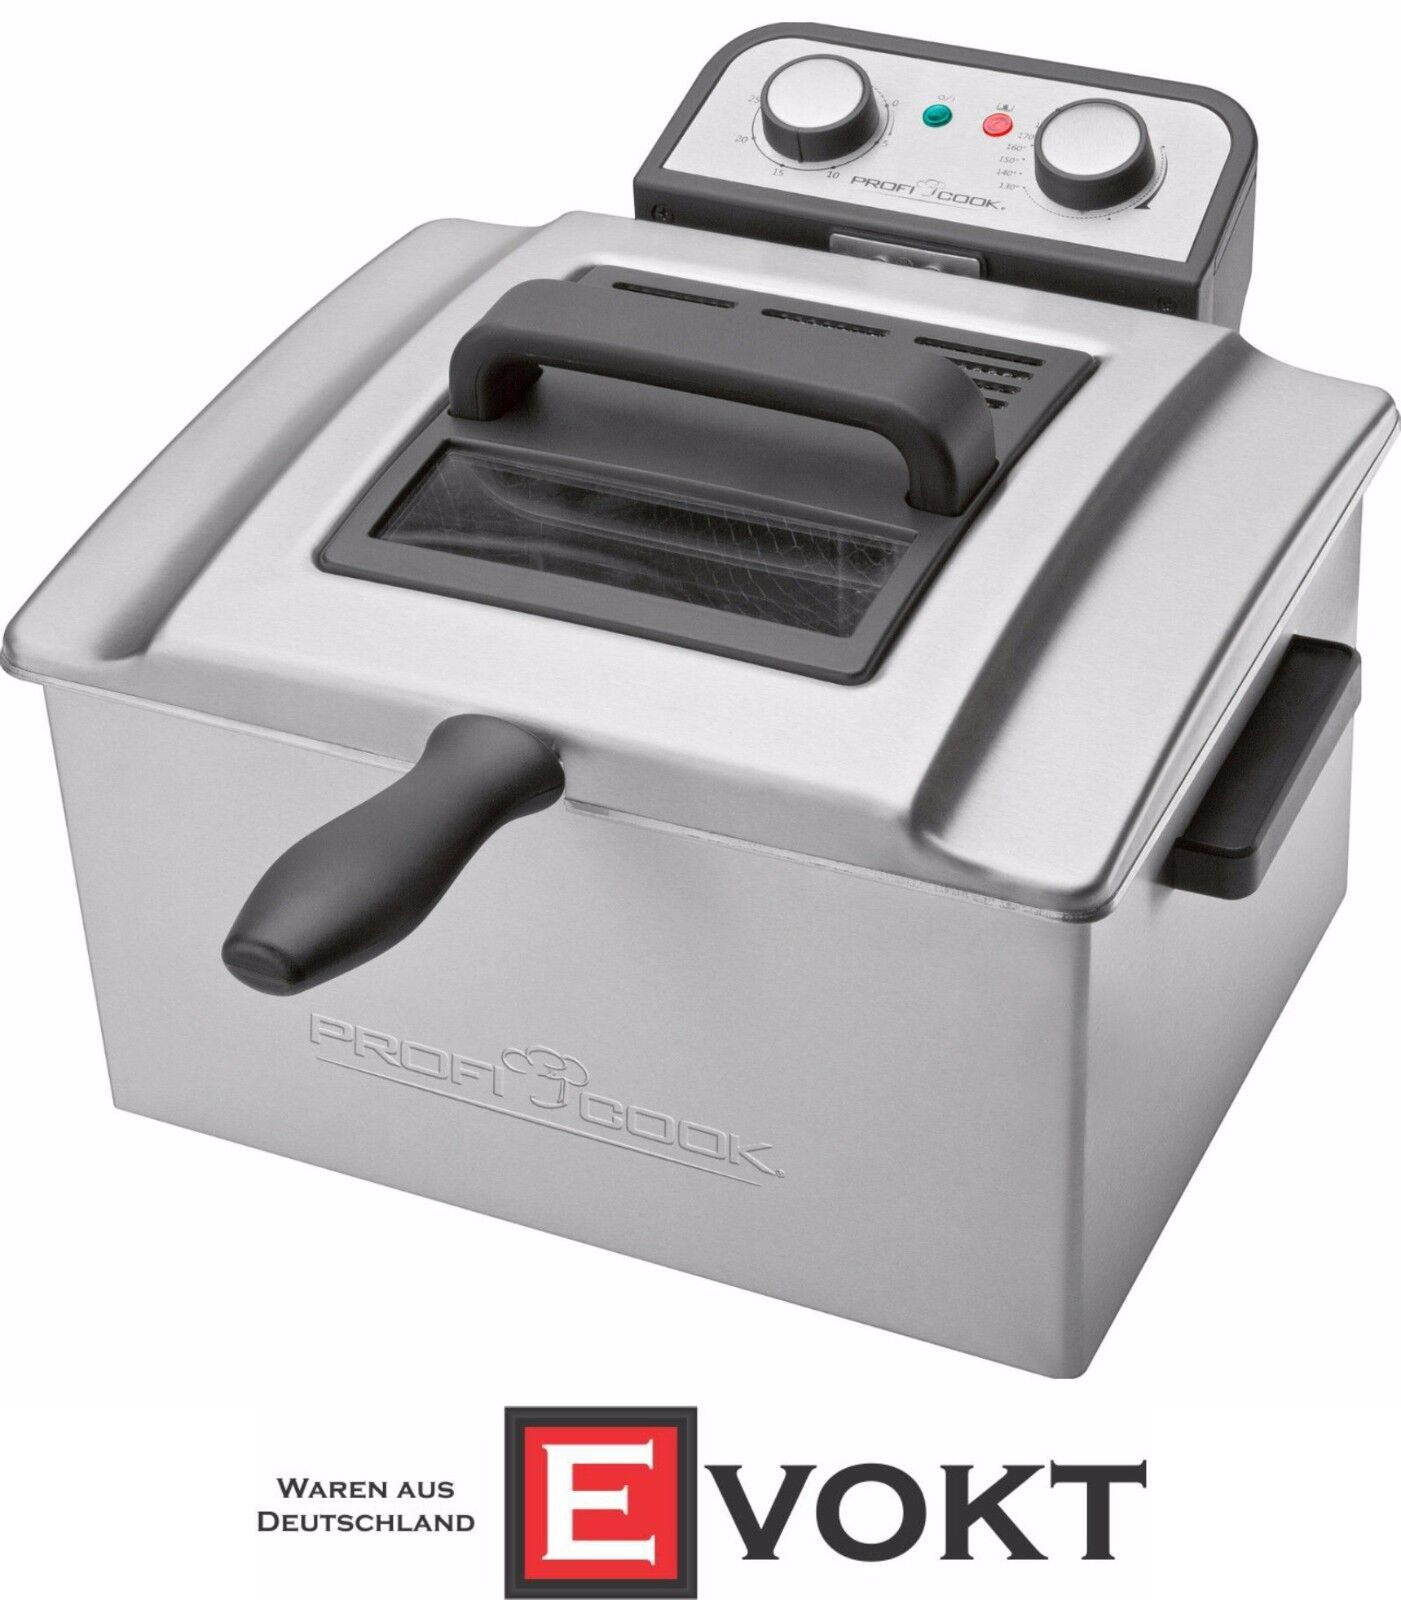 Proficook Professionnel Double Friteuse PC-FR 1038 Friteuse Inox 5 L NEUF